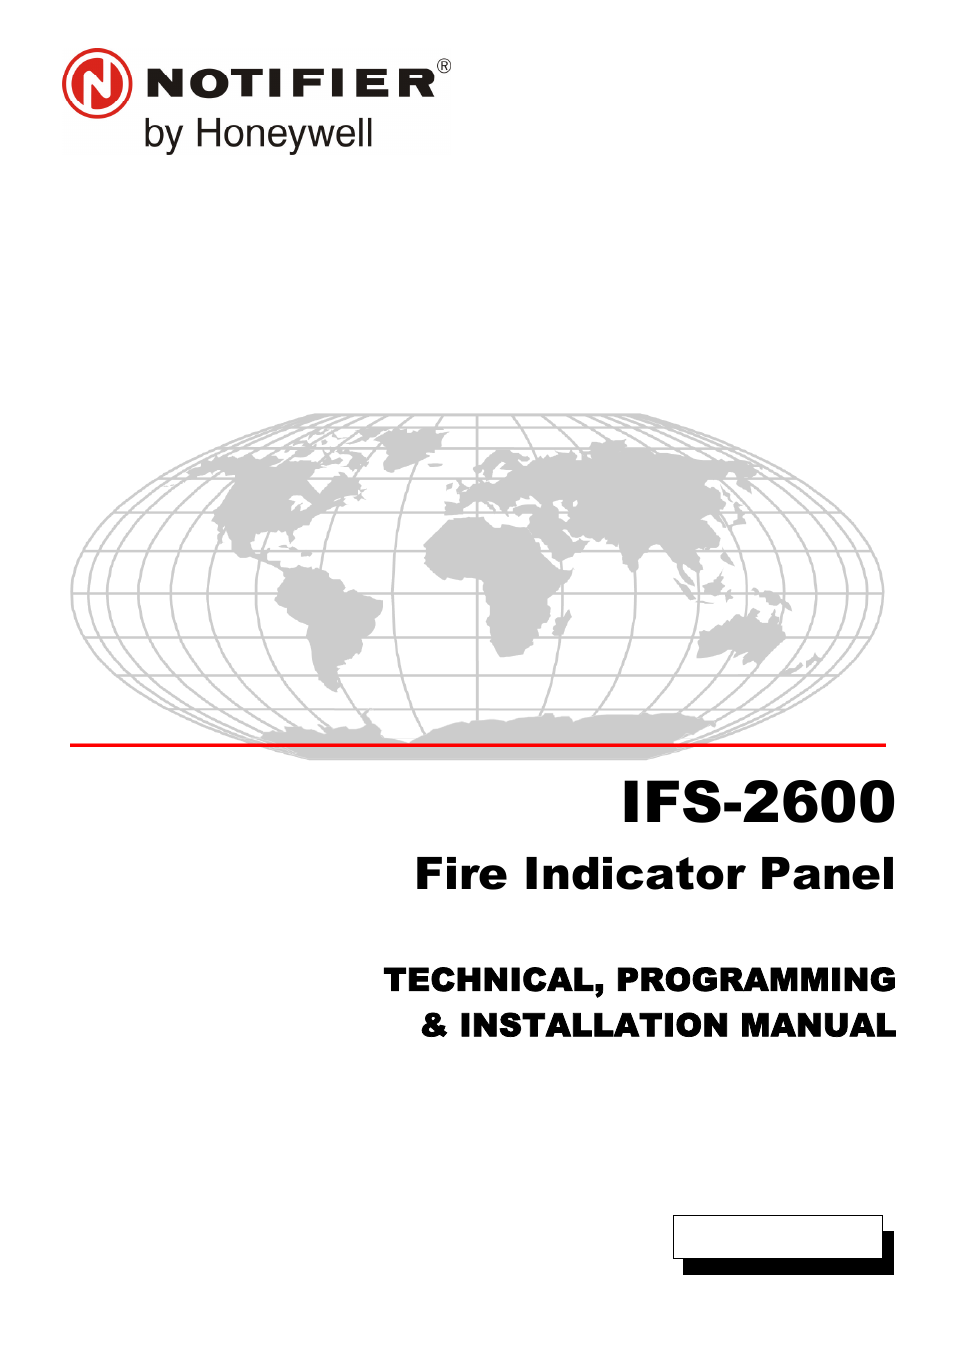 Honeywell NOTIFIER IFS-2600 User Manual | 80 pages